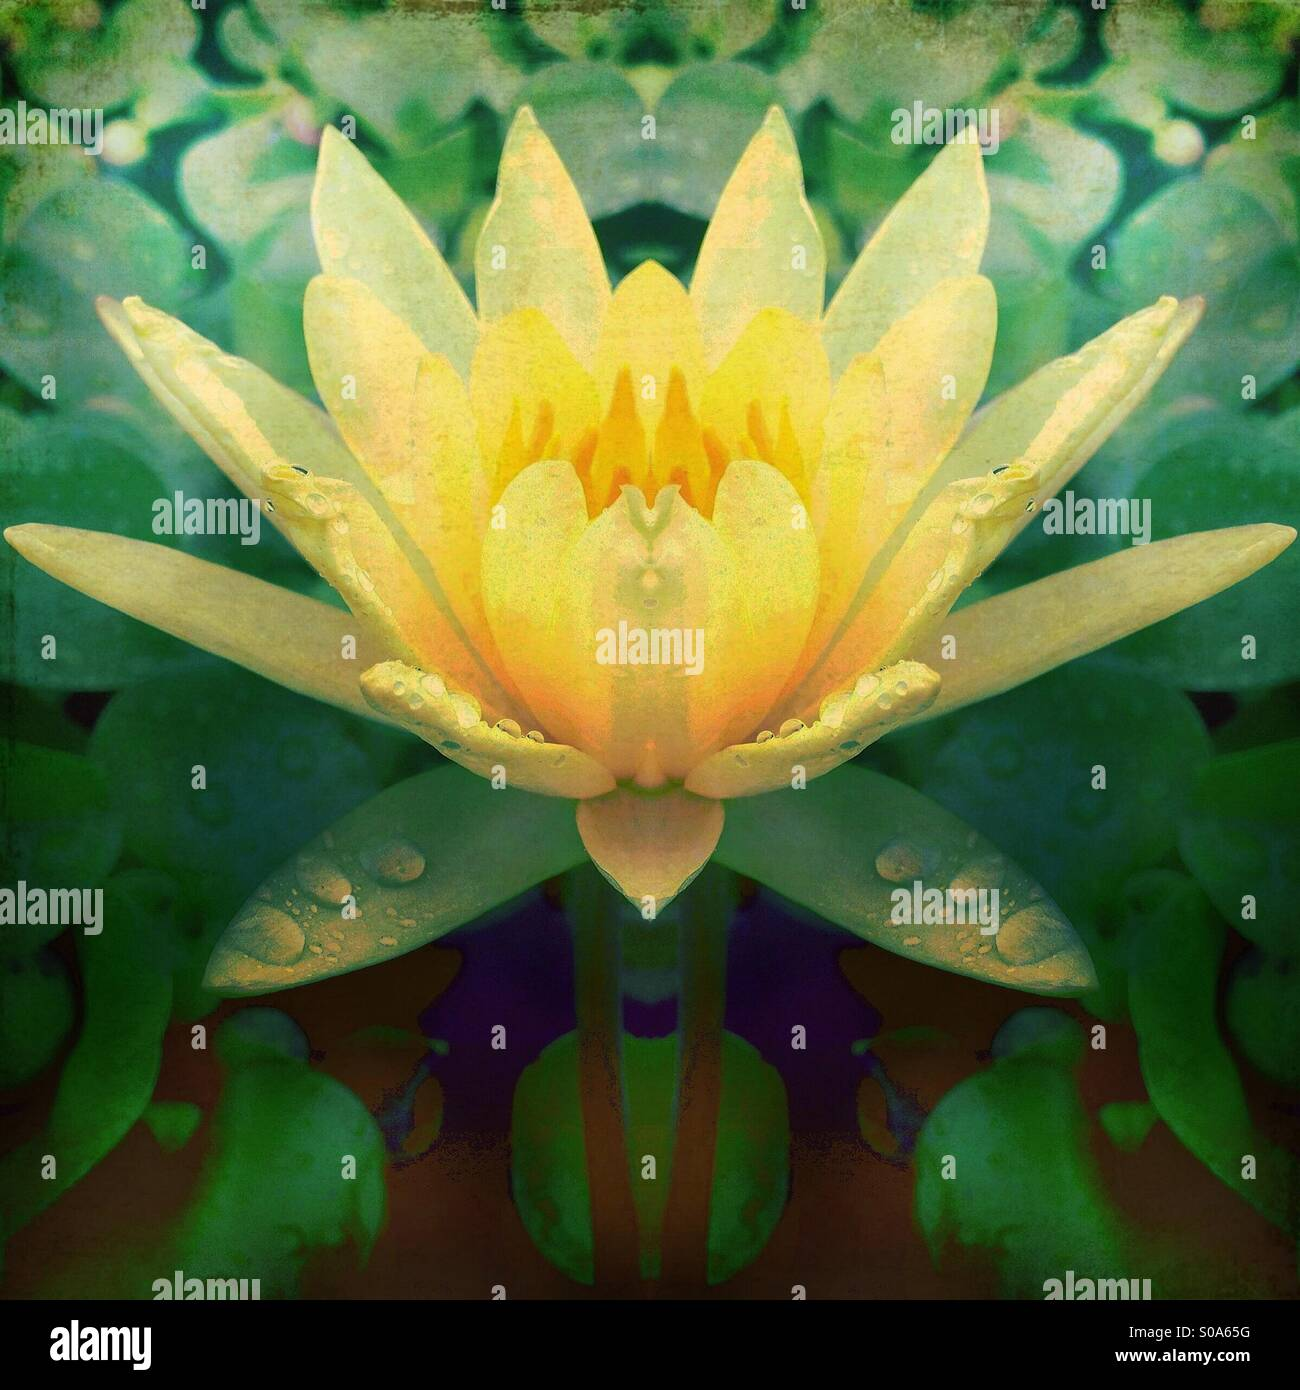 Yellow flower with lily pads stock photo 310011004 alamy yellow flower with lily pads izmirmasajfo